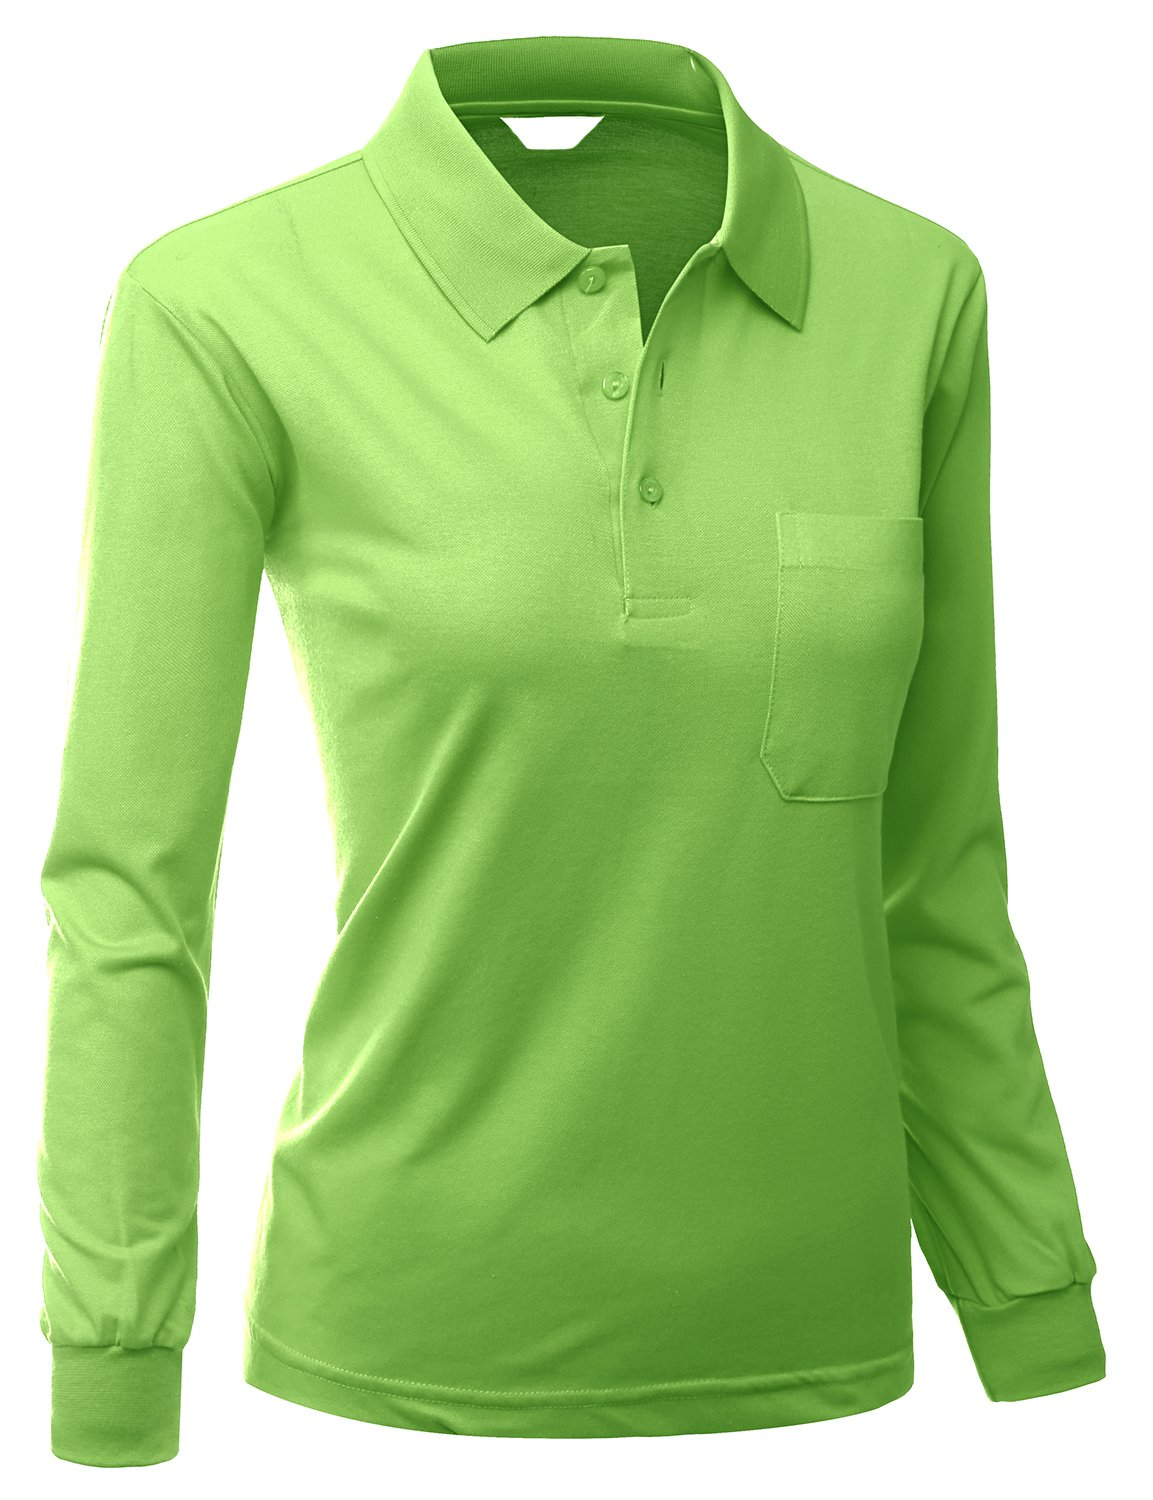 womens Sporty style TC Polo Dri Fit Collar TShirt LIGHTGREEN Size M